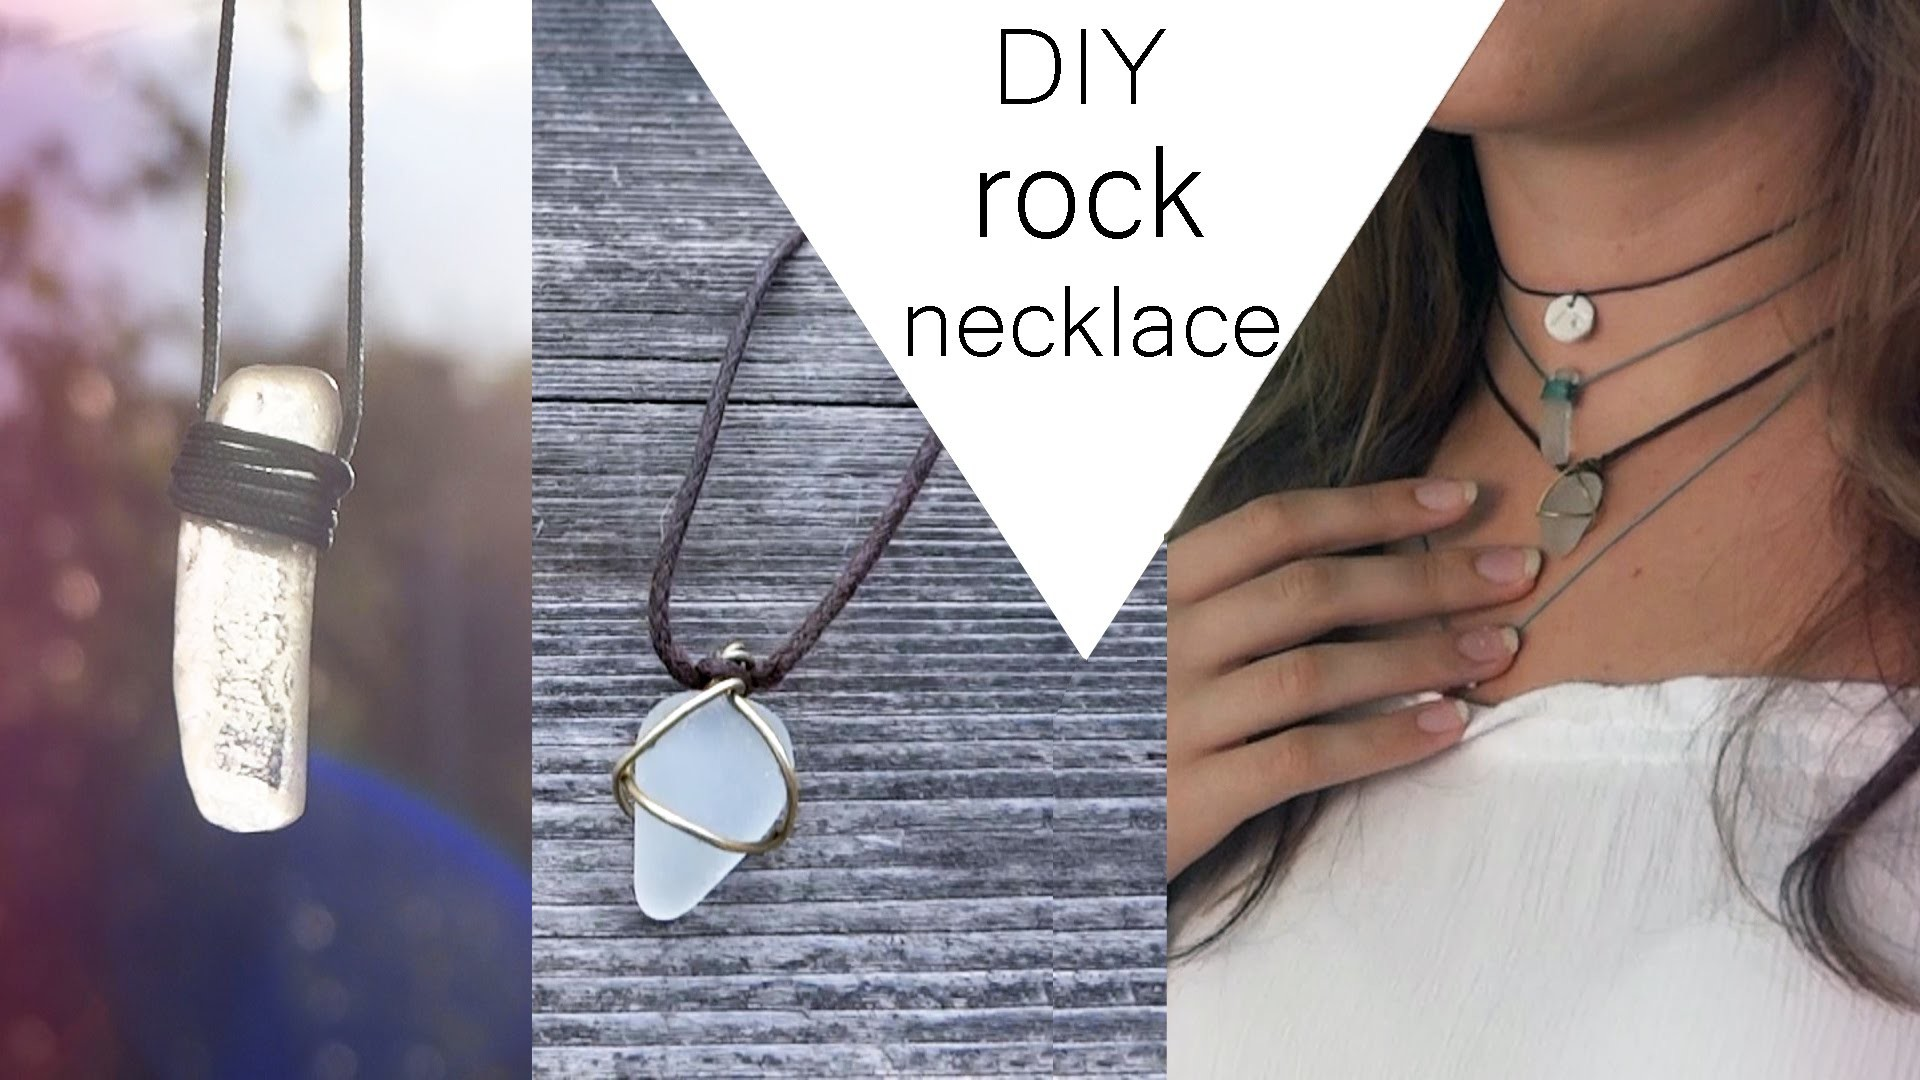 DIY ROCK NECKLACE